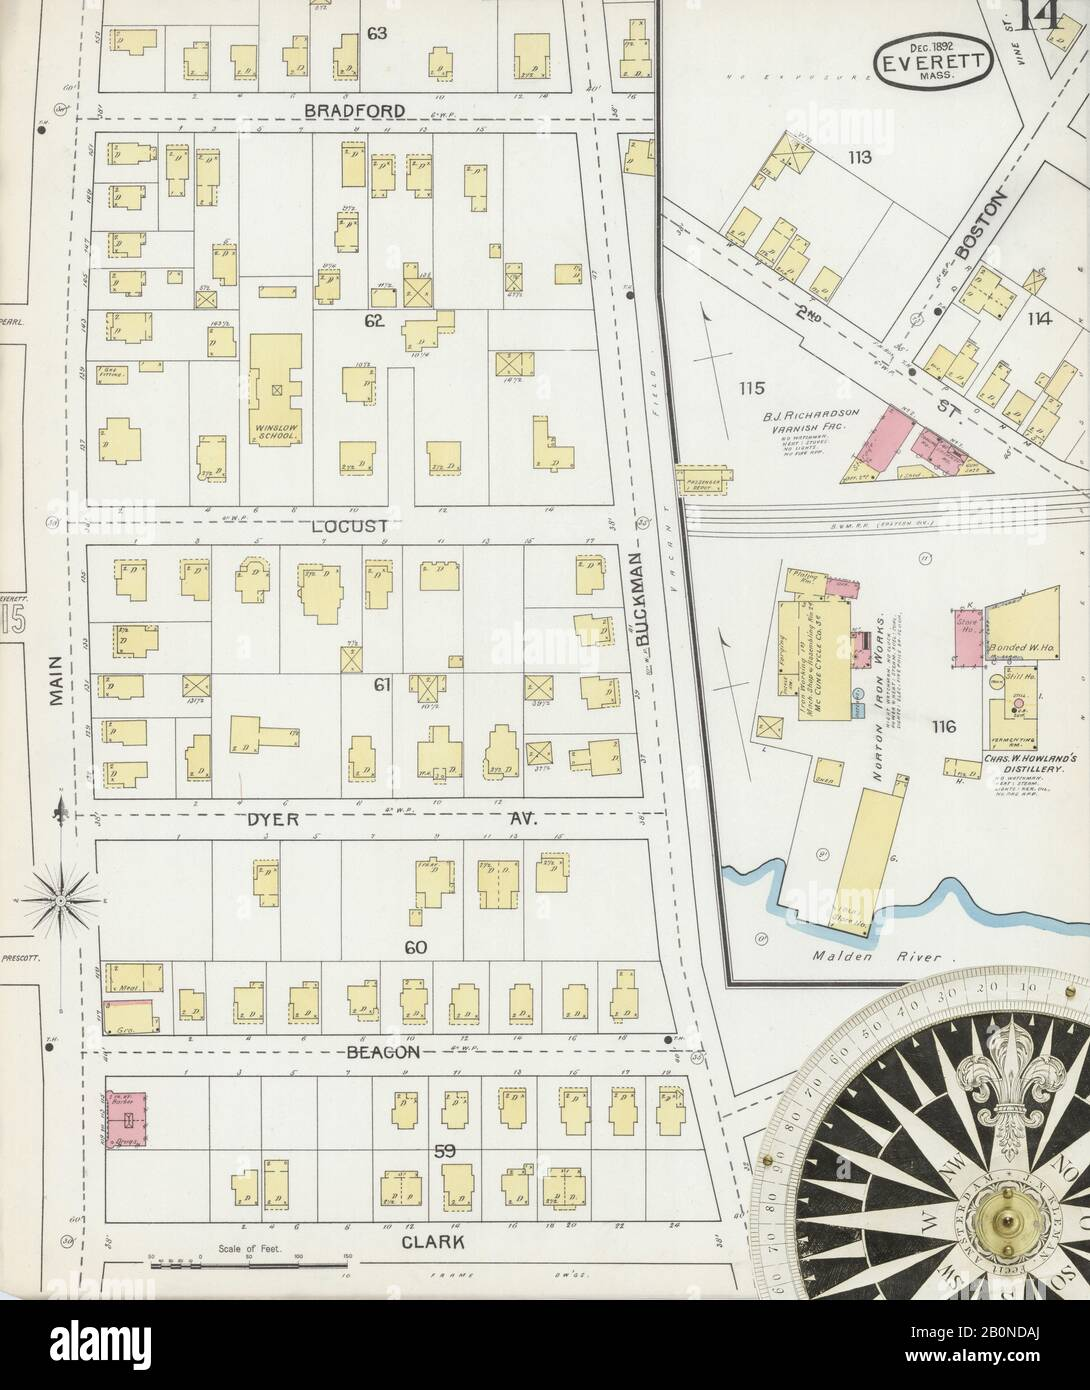 Image 14 of Sanborn Fire Insurance Map from Everett, Middlesex County, Massachusetts. Dec 1892. 16 Sheet(s), America, street map with a Nineteenth Century compass Stock Photo